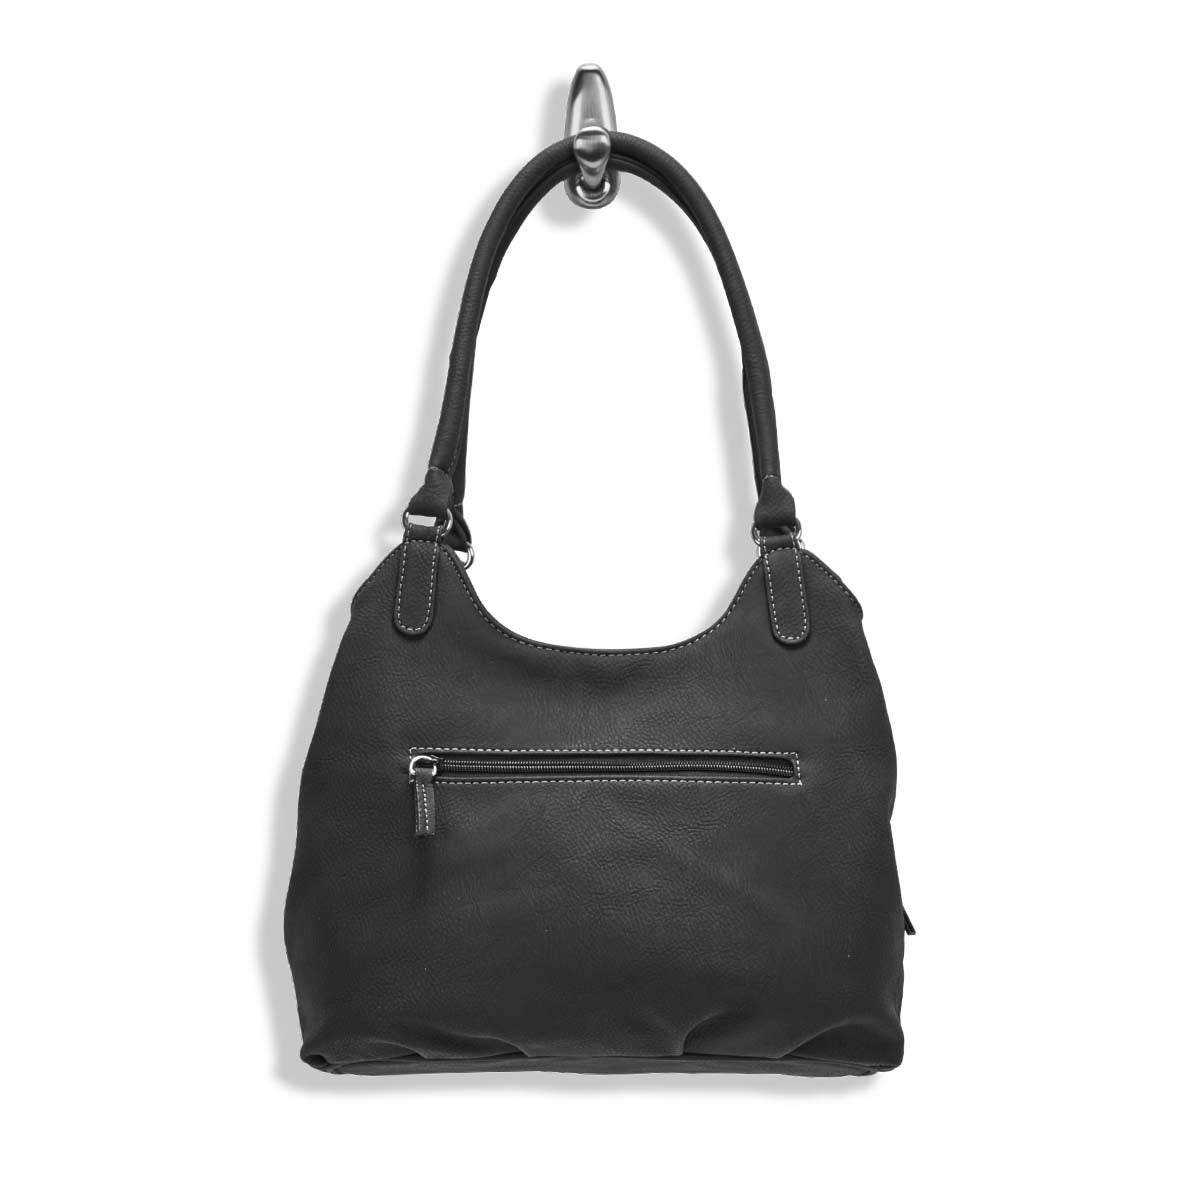 Lds Sydney black hobo bag